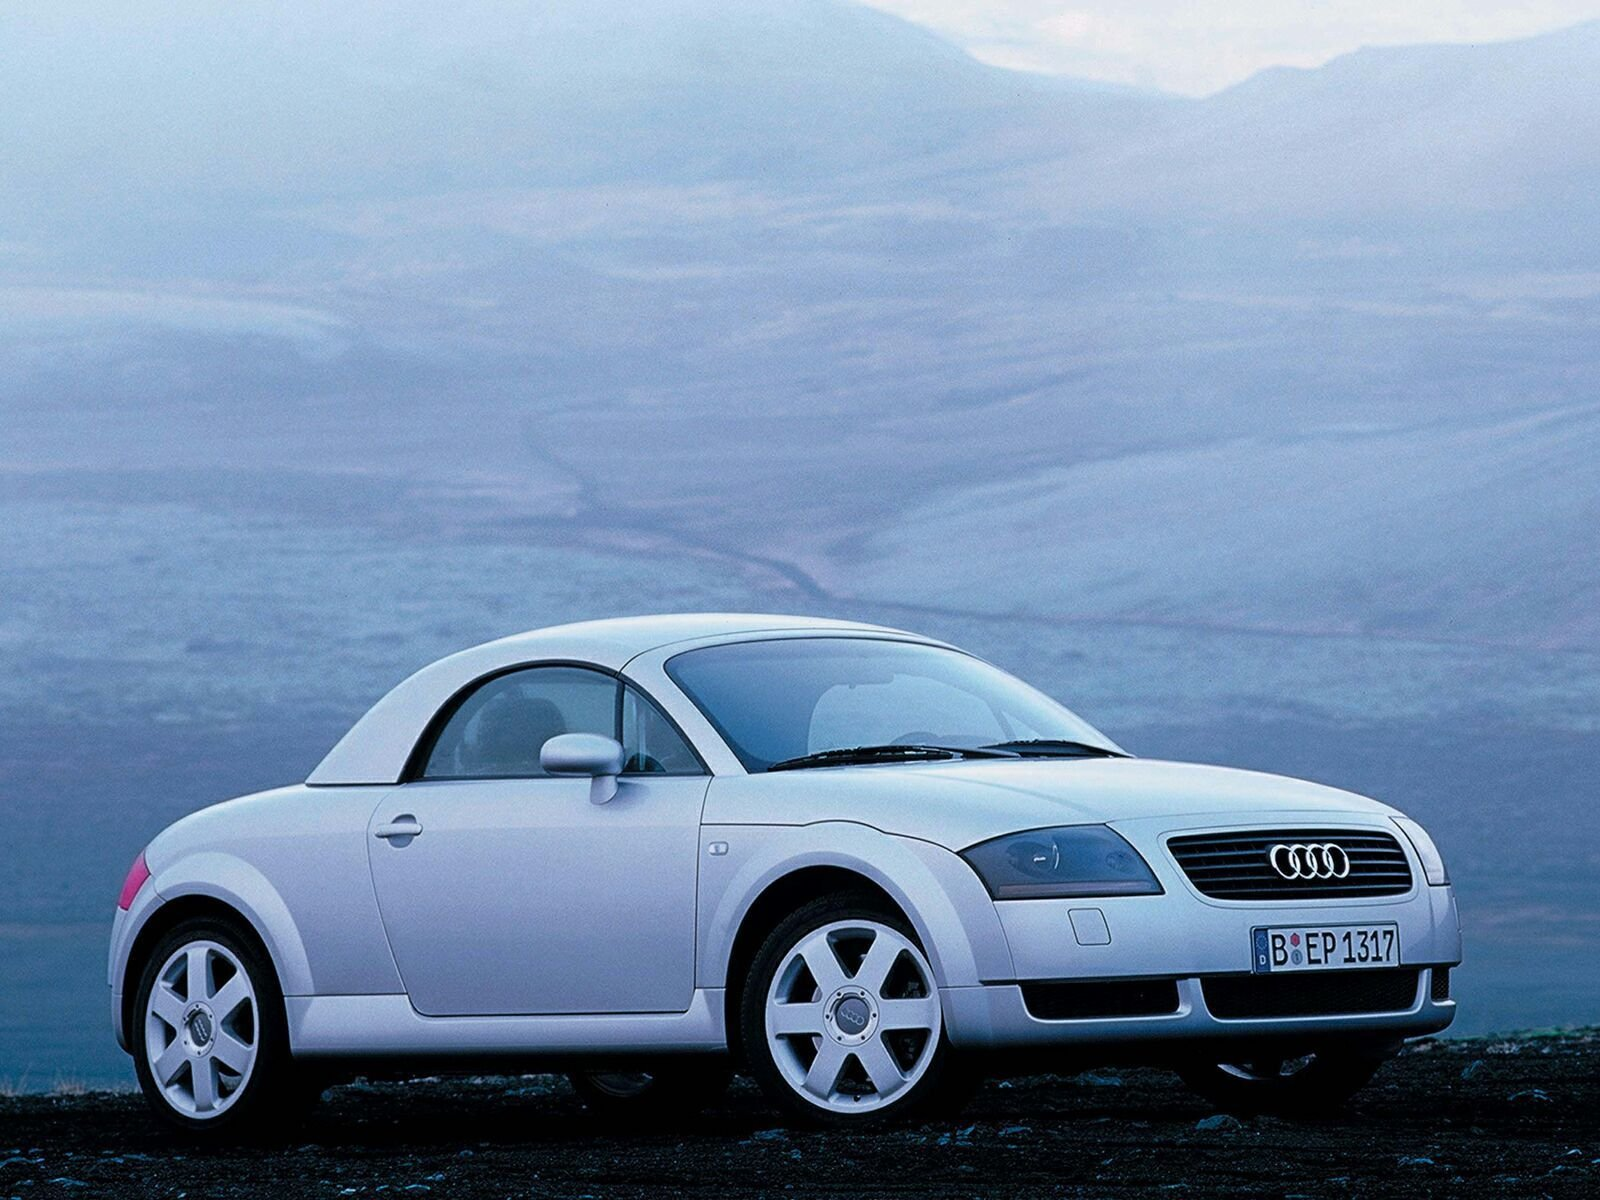 2003 audi tt roadster picture 30551 car review top speed. Black Bedroom Furniture Sets. Home Design Ideas